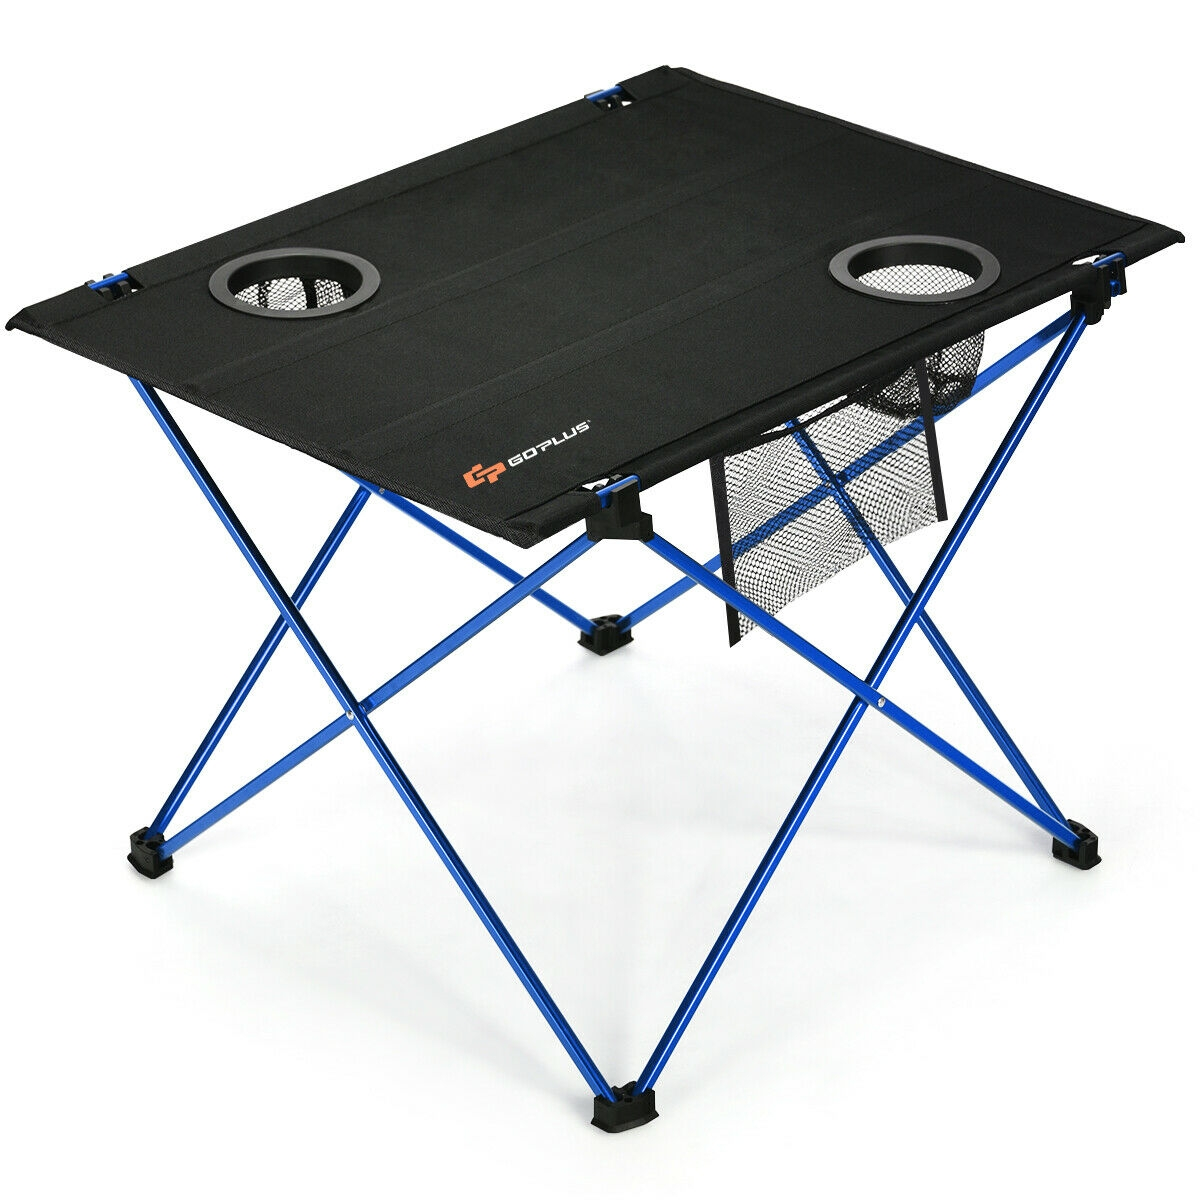 Foldable Camping Picnic Table with Cup Holders-Blue